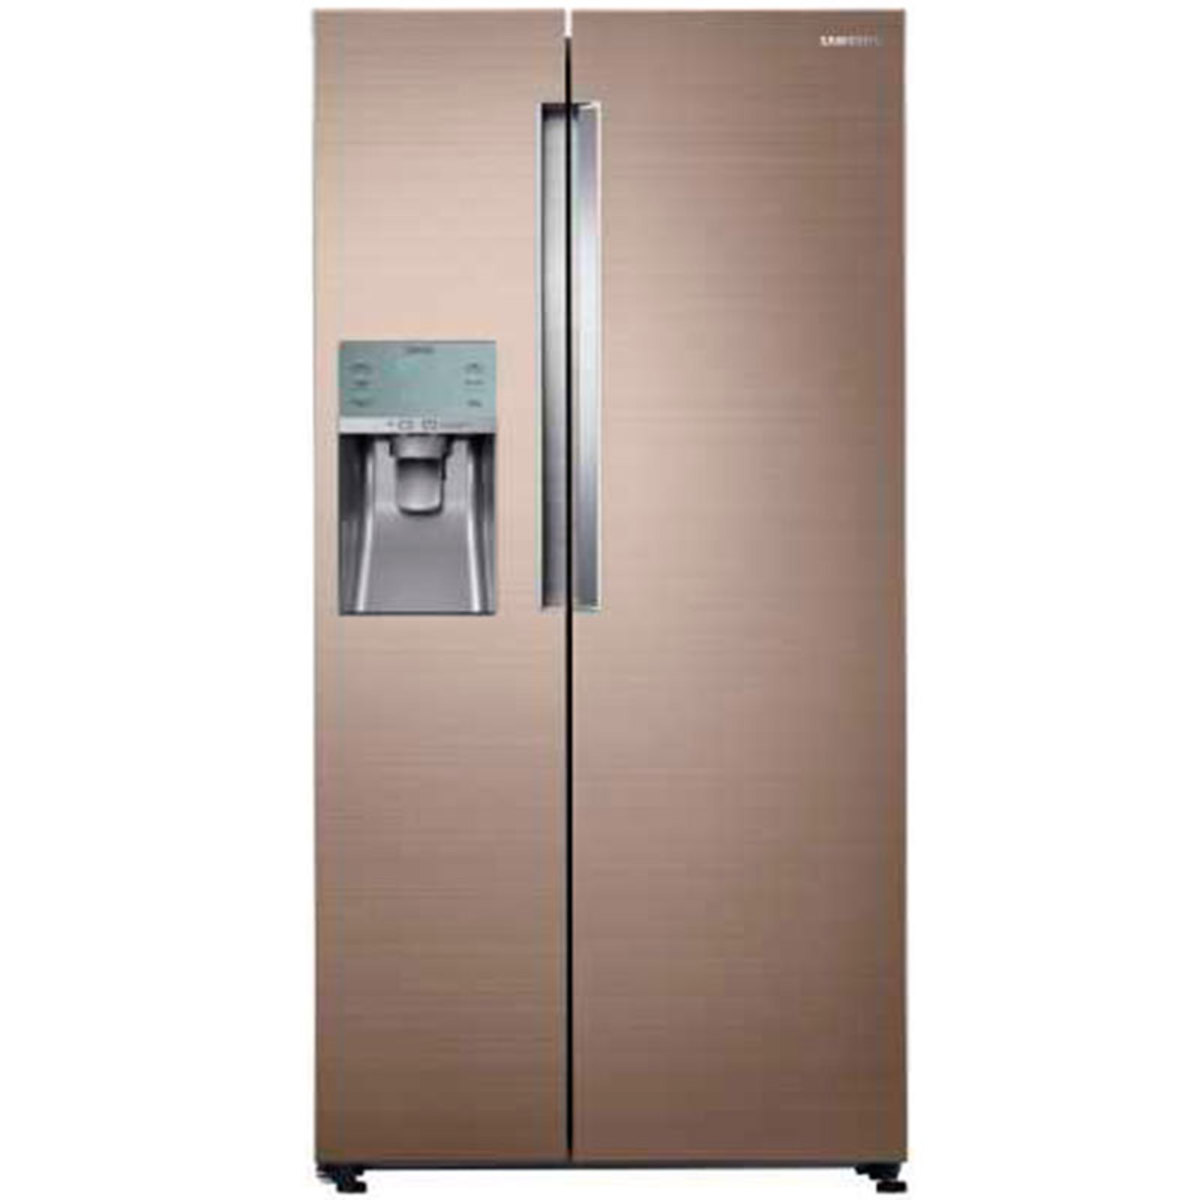 RS58K66677P/SH 575L Side by Side Refrigerator Hong Kong Warranty Genuine Products